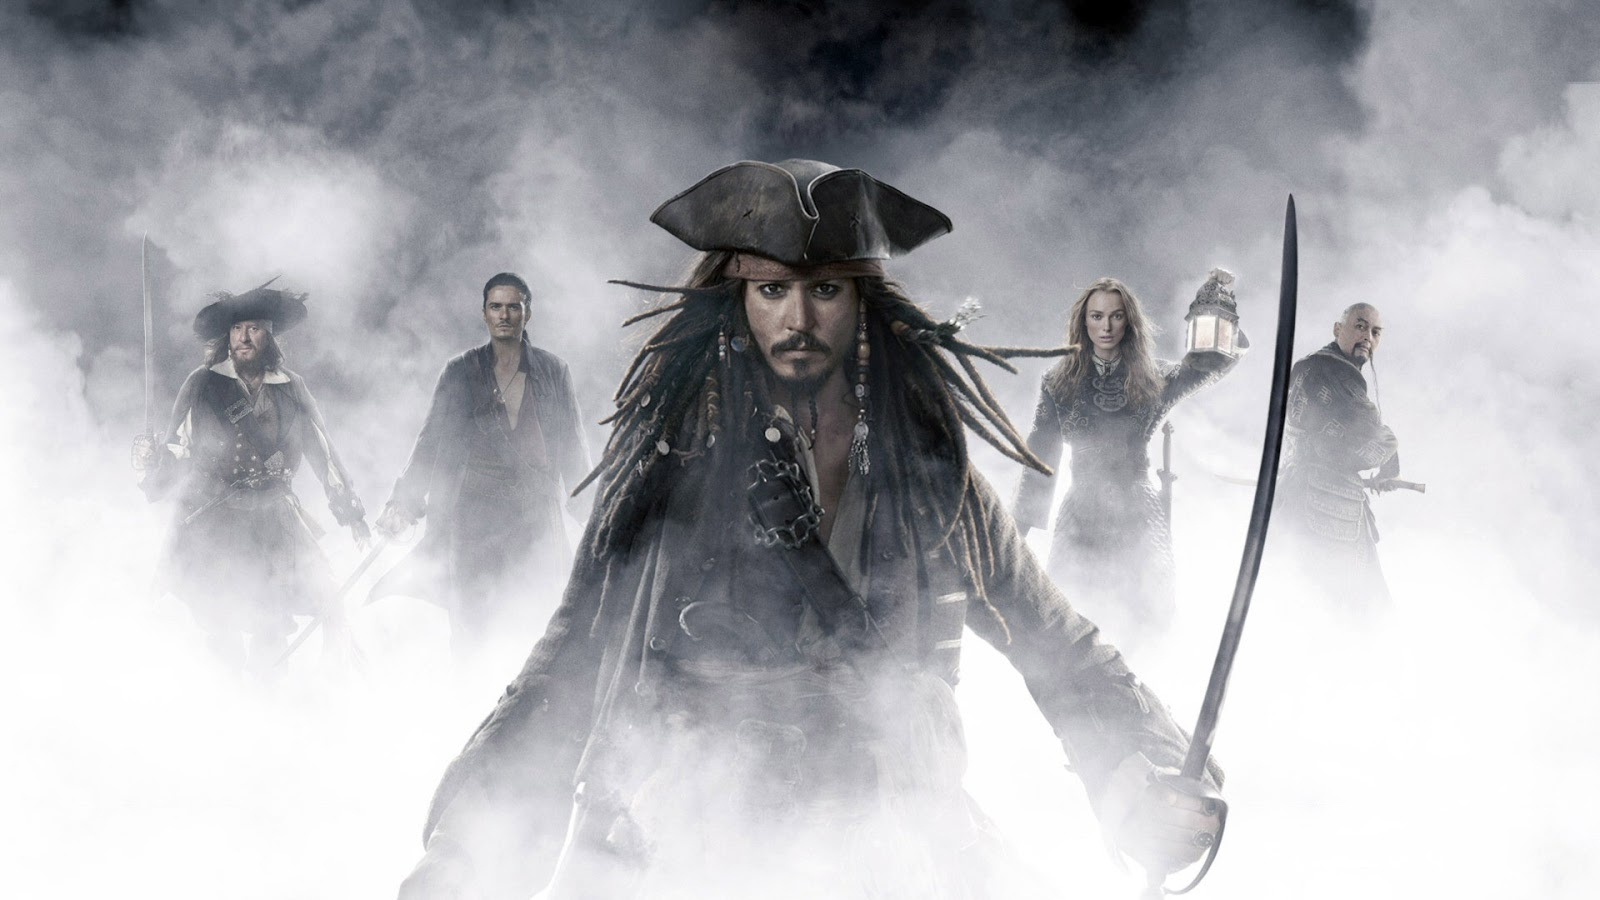 Movies hd wallpapers hd wallpapers desktop wallapers high definition wallpapers - Pirate background ...